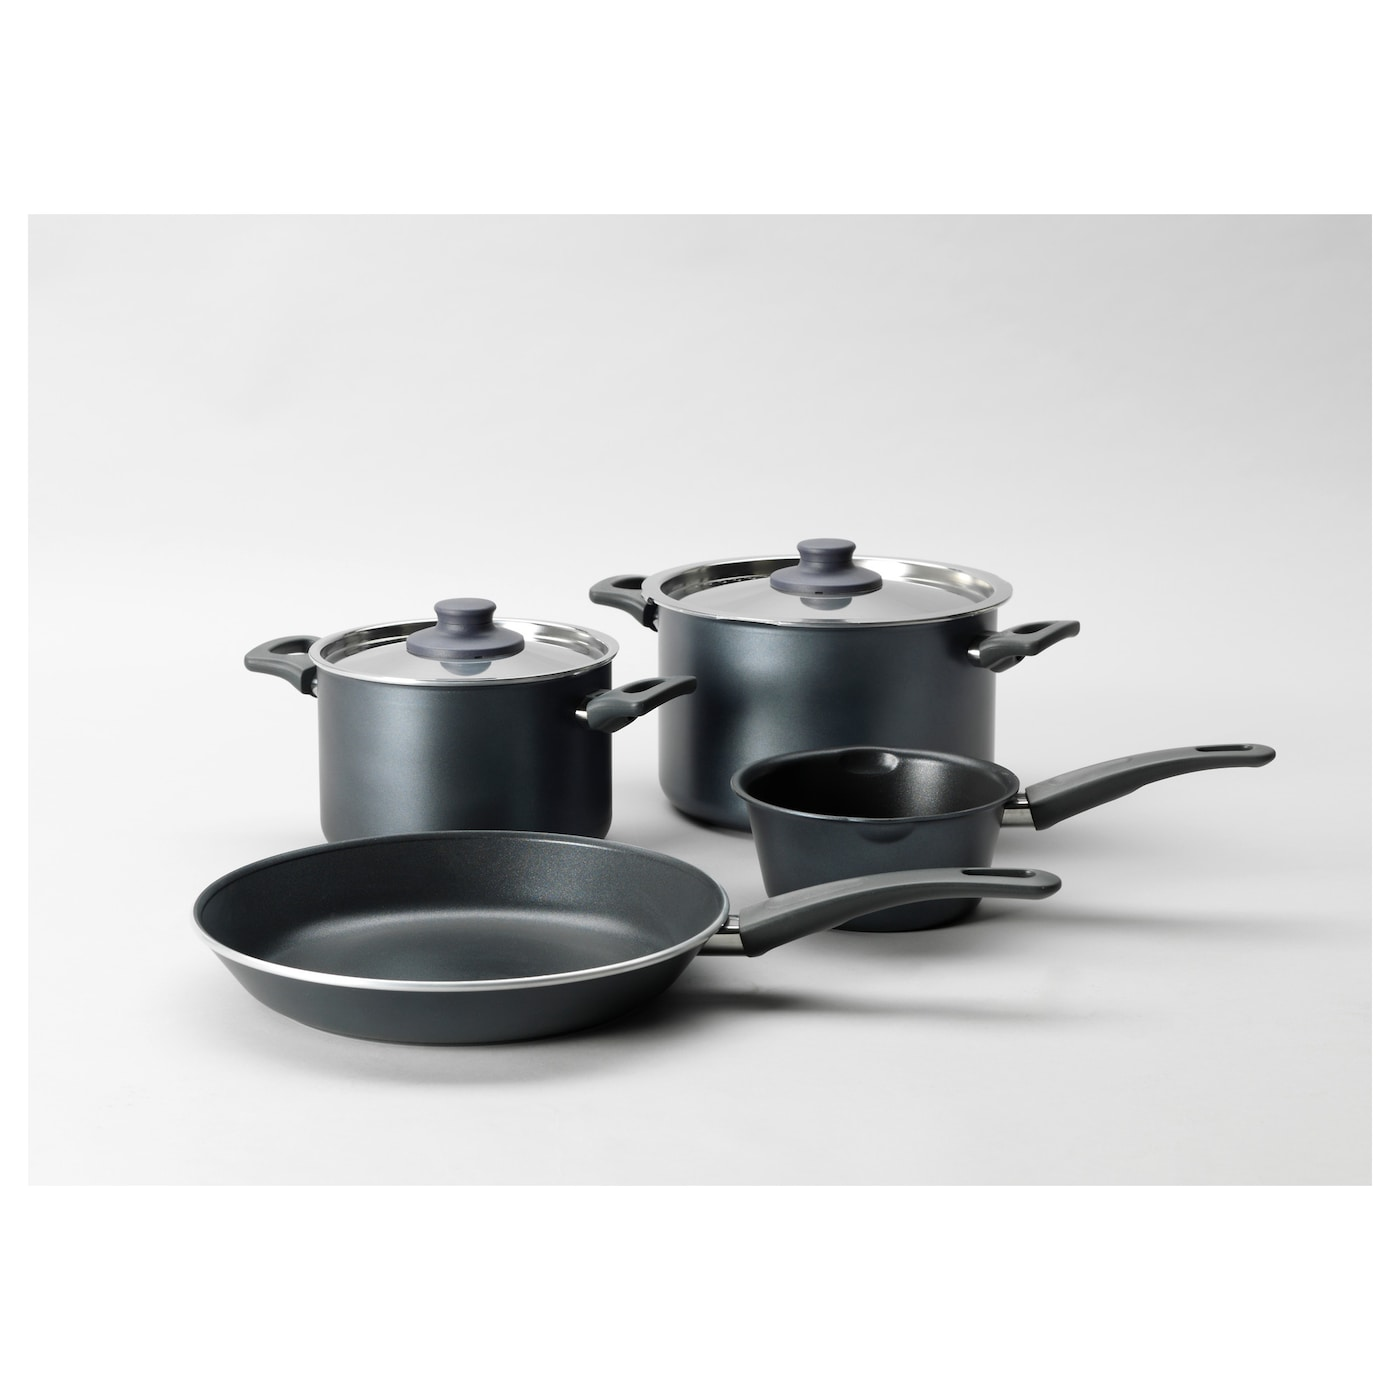 IKEA SKÄNKA 6-piece cookware set Comfortable handles make the cookware easy to lift.